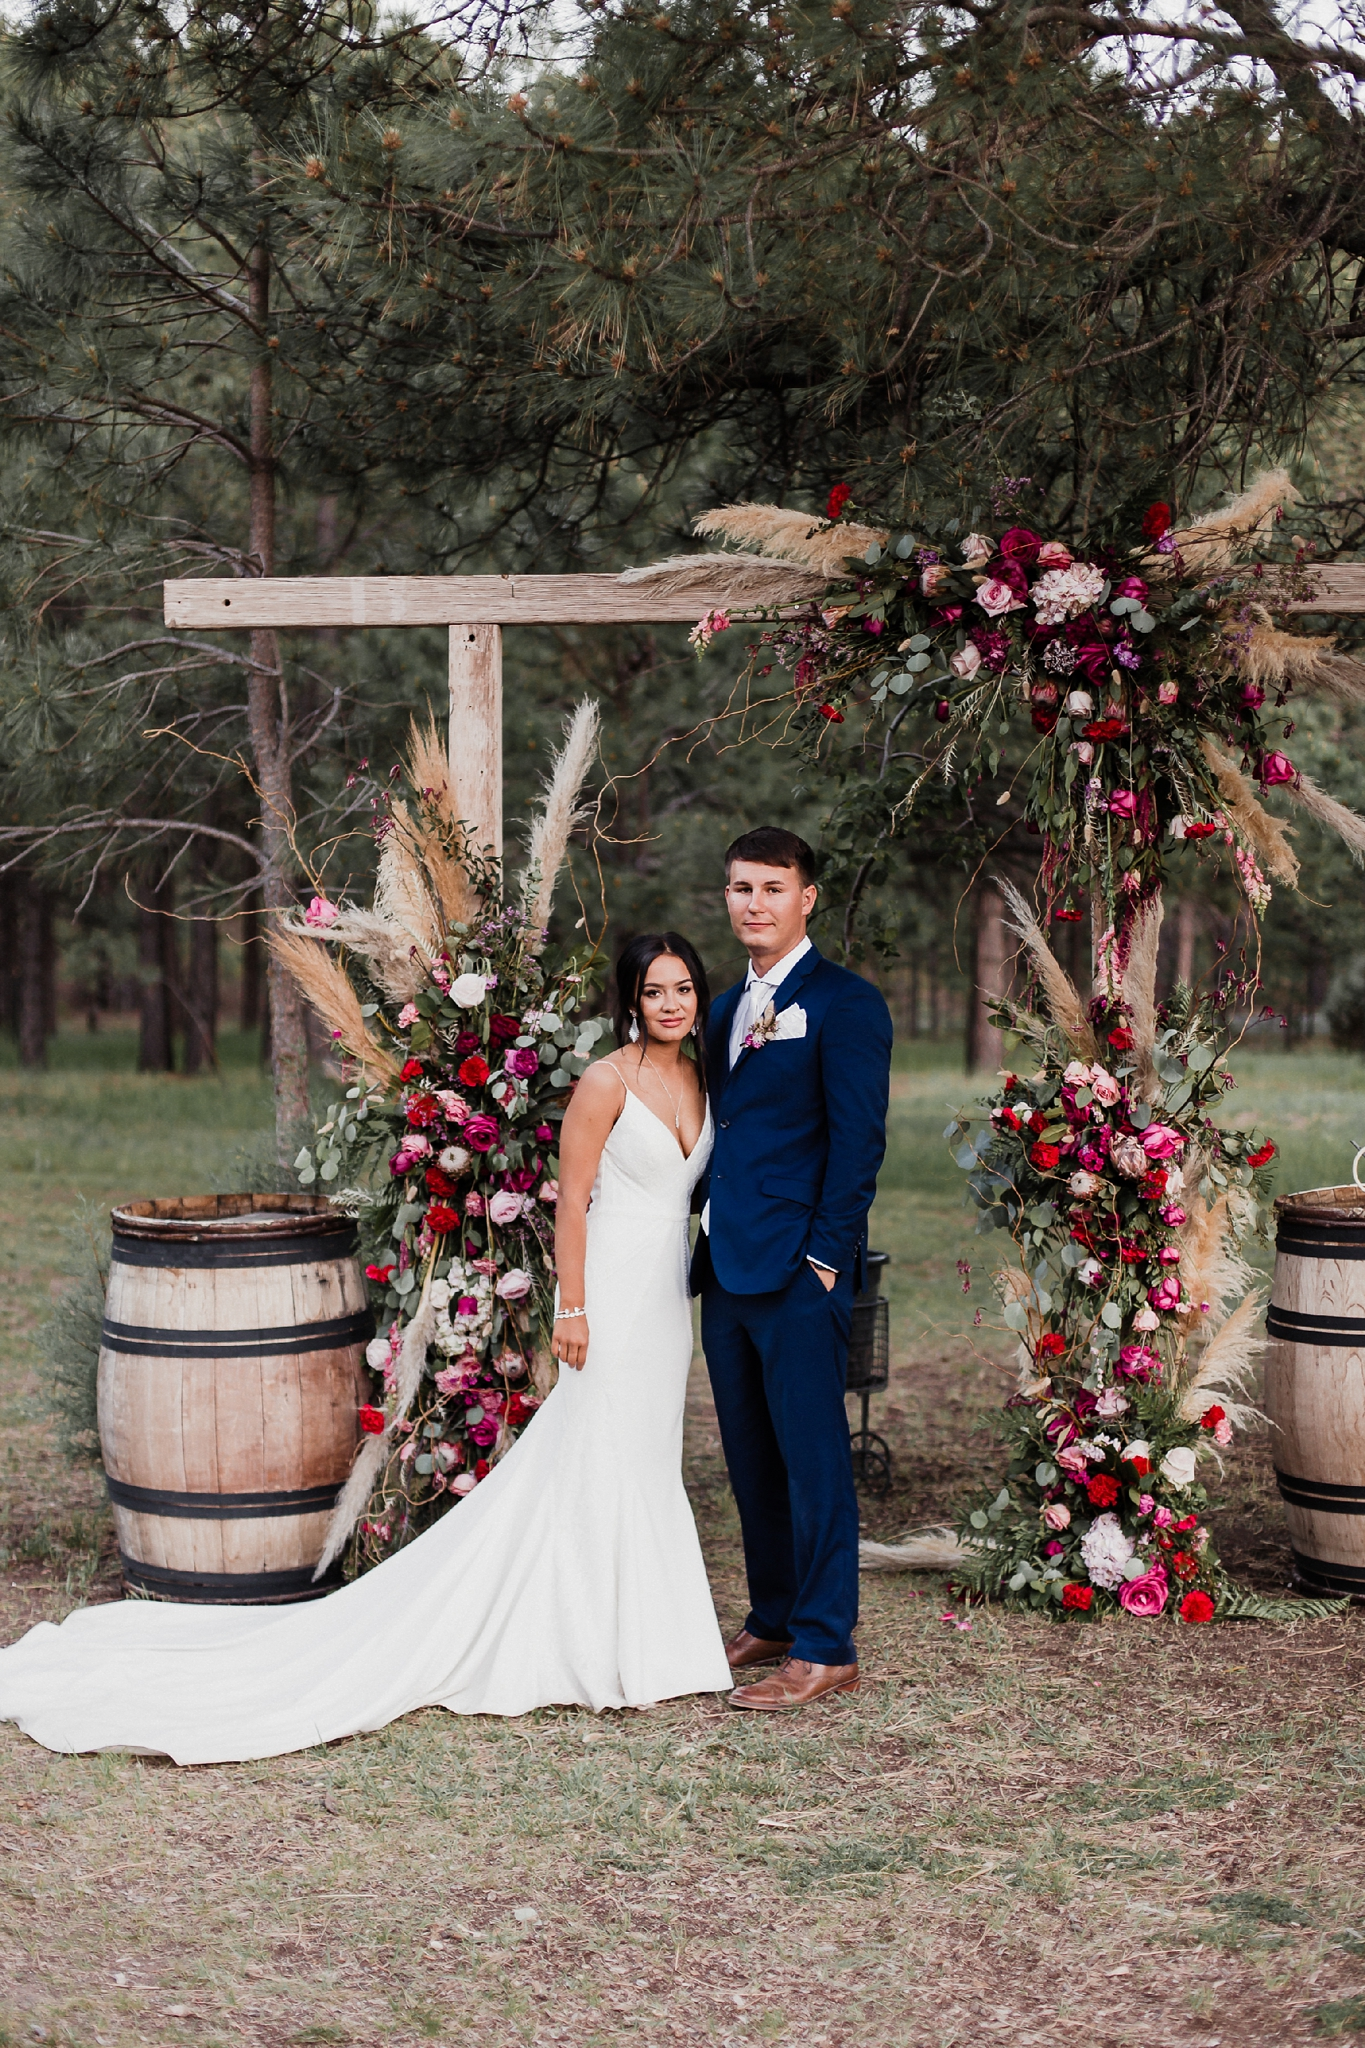 Alicia+lucia+photography+-+albuquerque+wedding+photographer+-+santa+fe+wedding+photography+-+new+mexico+wedding+photographer+-+new+mexico+wedding+-+new+mexico+wedding+-+barn+wedding+-+enchanted+vine+barn+wedding+-+ruidoso+wedding_0140.jpg